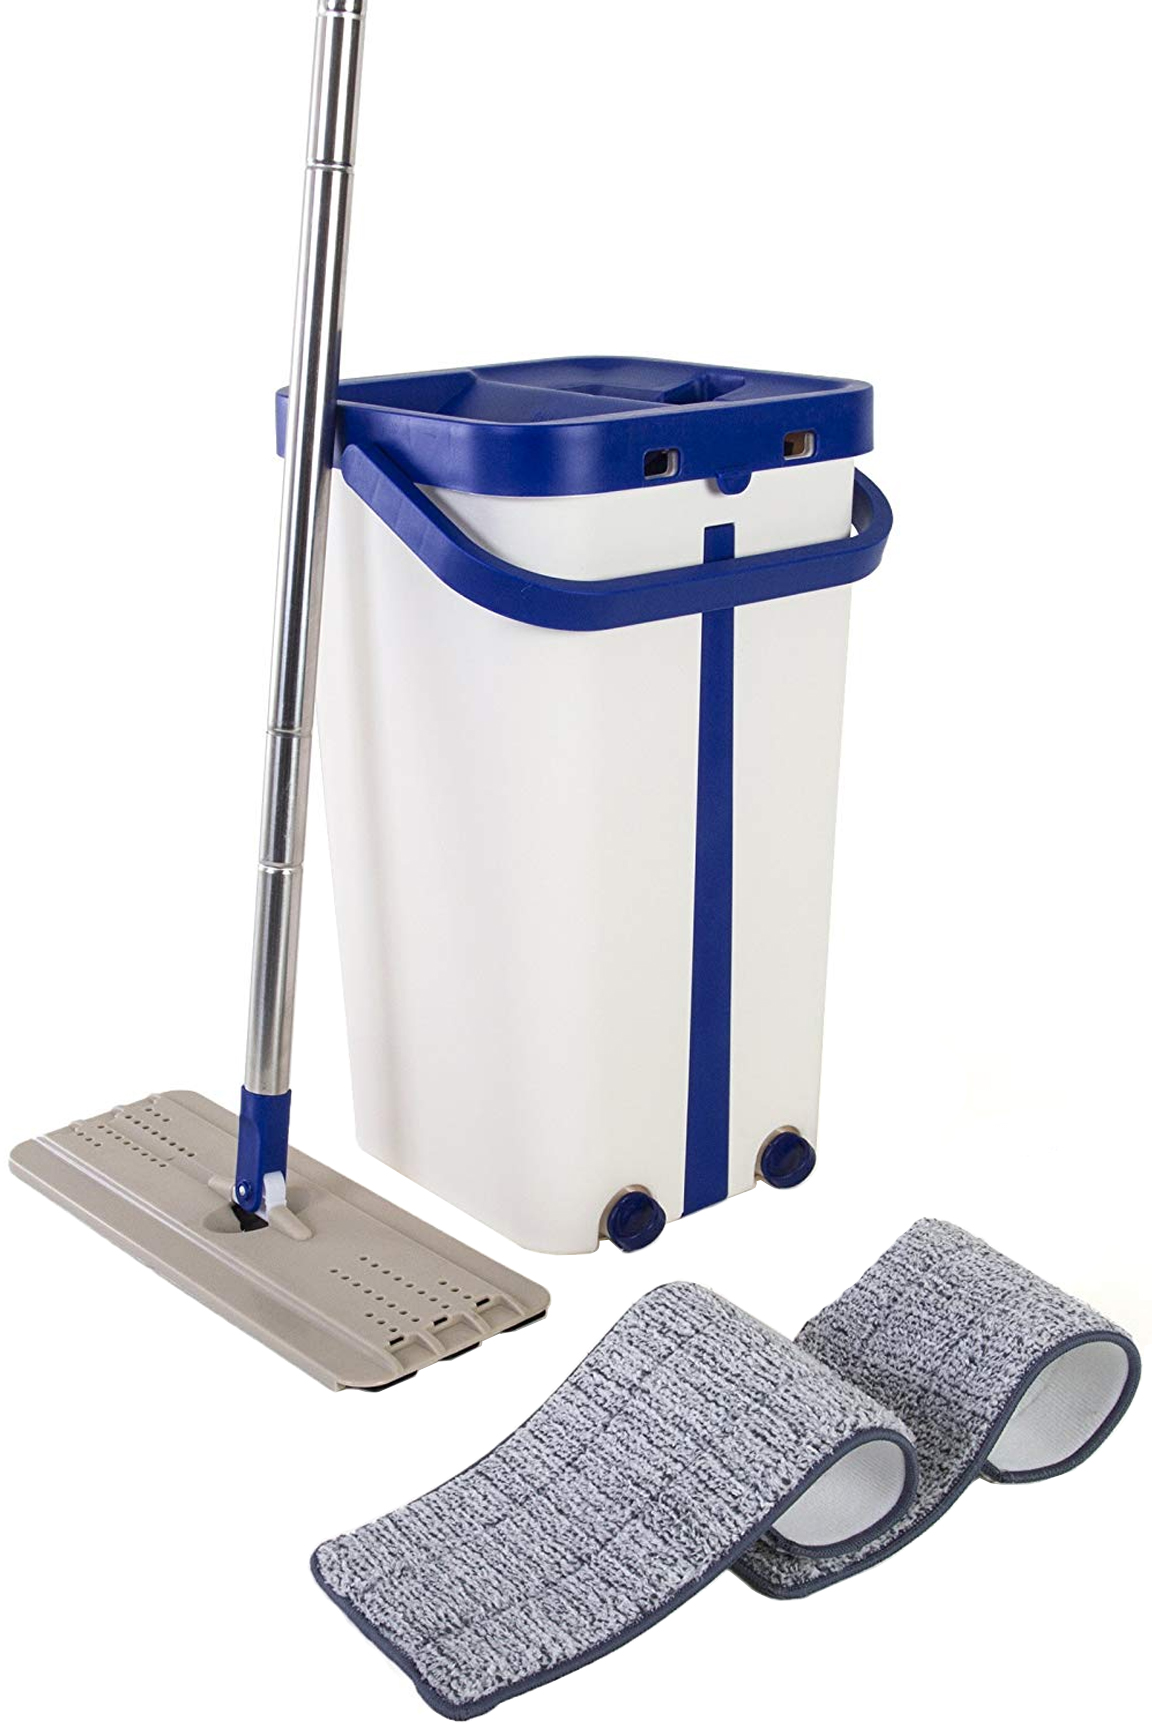 Self-Cleaning Flat Mop And Bucket Set